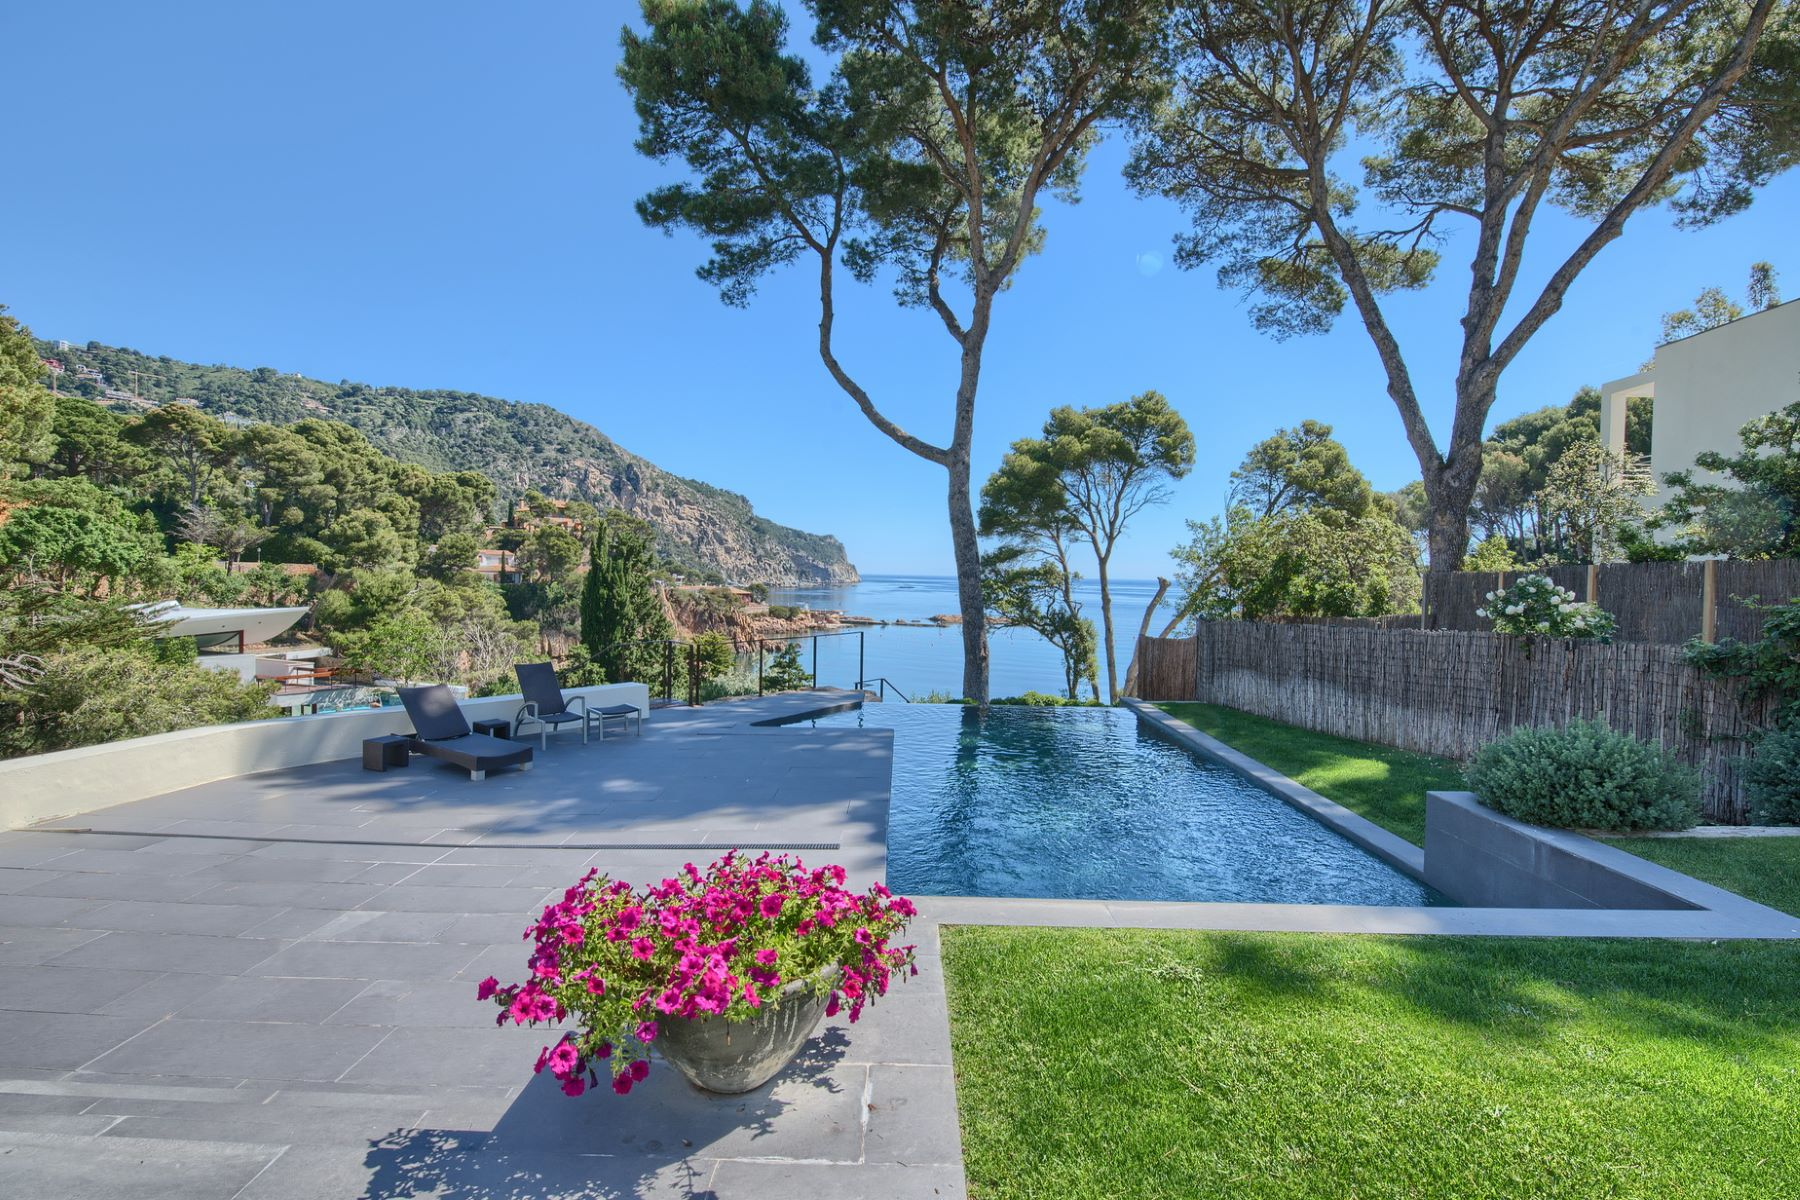 Maison unifamiliale pour l Vente à Magnificent modern sea front villa for sale in Aiguablava Begur, Costa Brava, 17255 Espagne